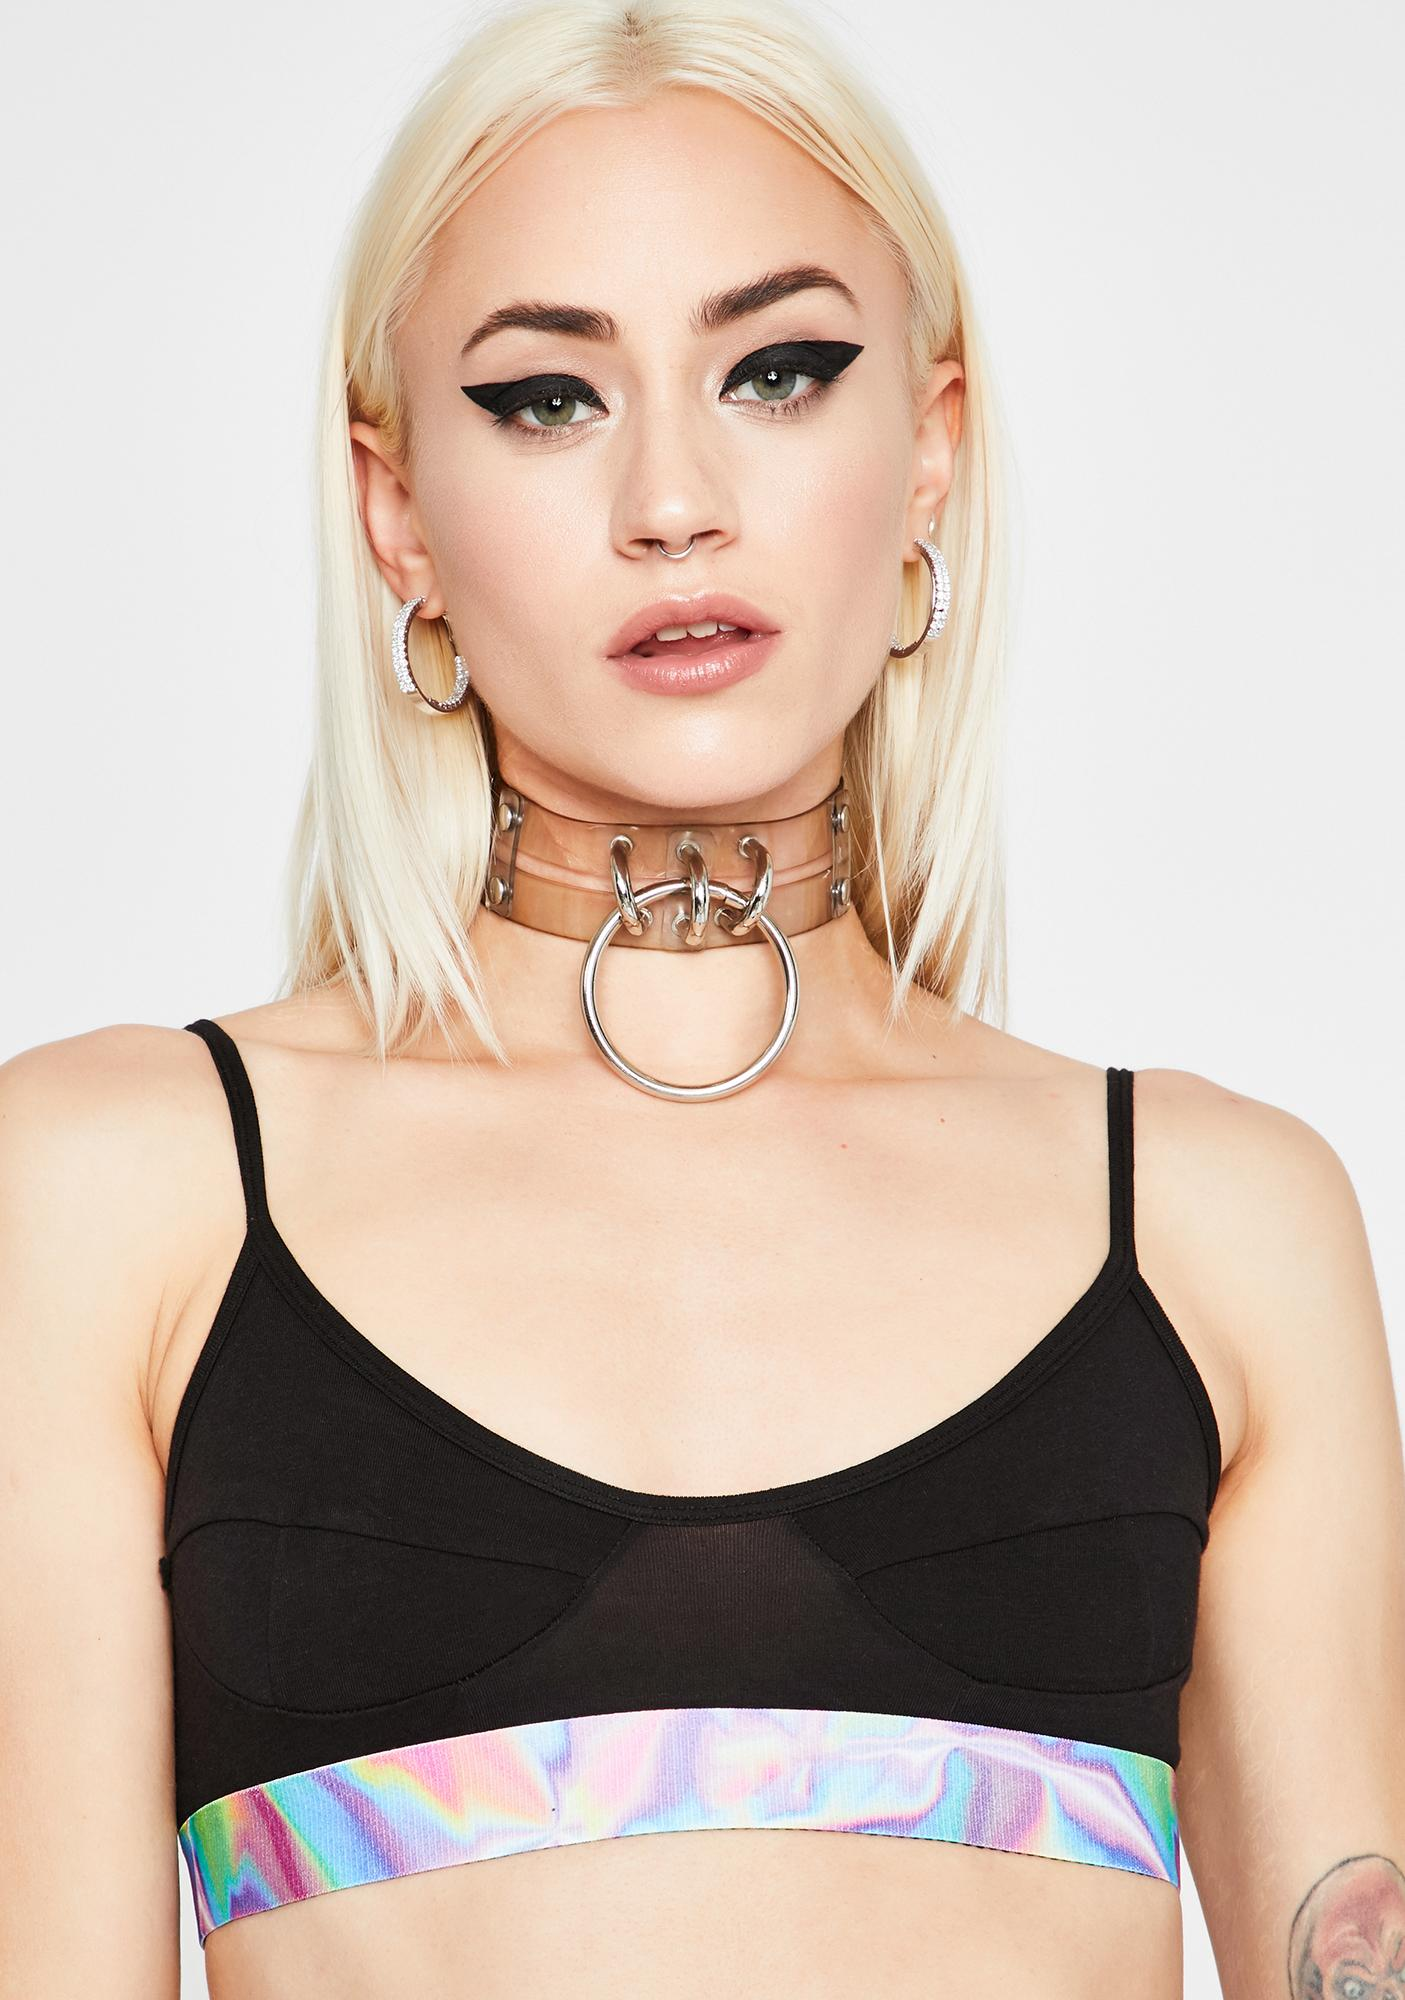 Related Garments The Trippy Bralette